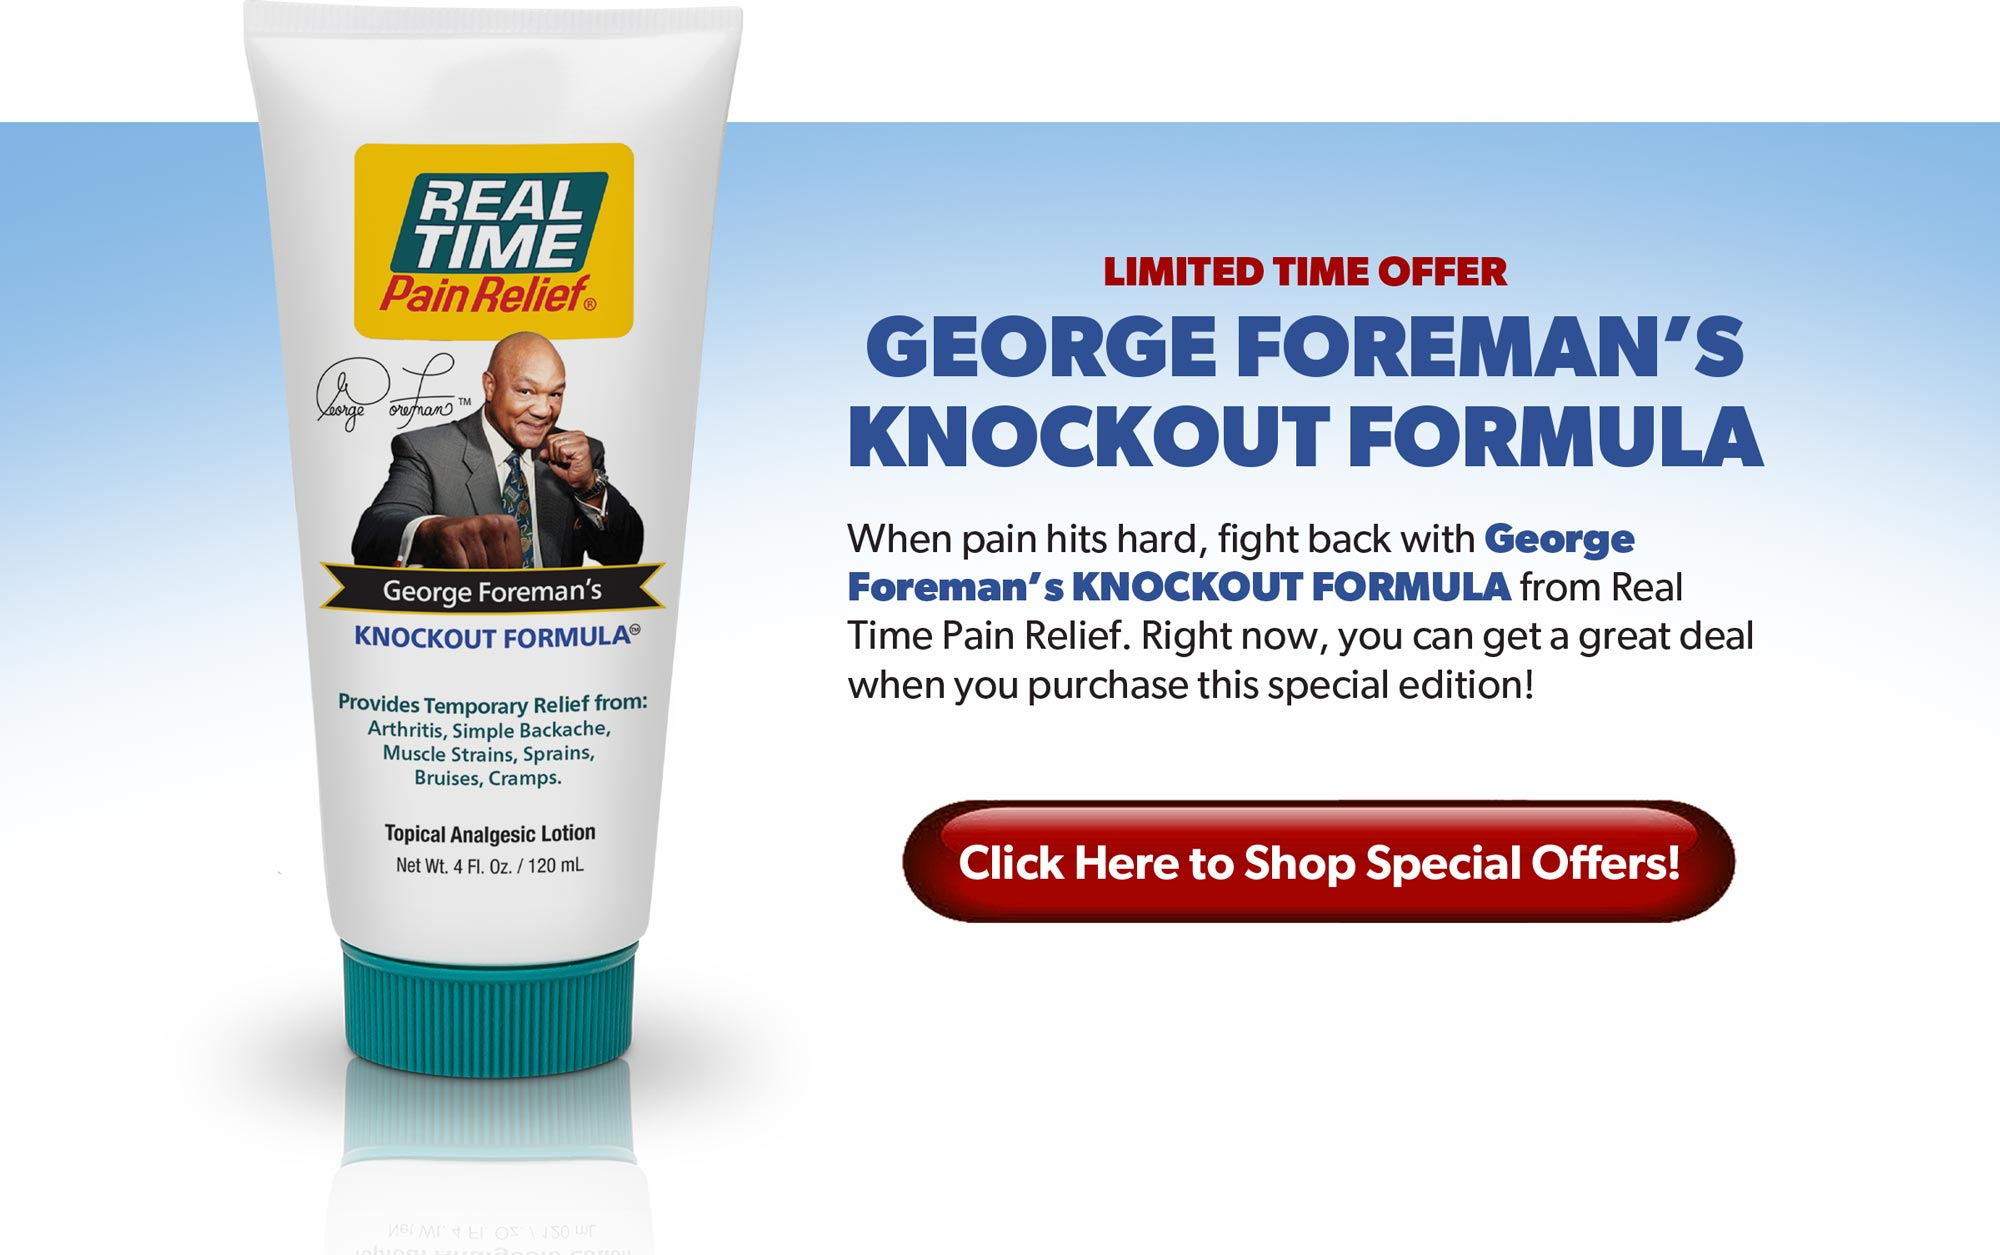 When pain hits hard, fight back with George Foreman's Knockout Formula from <span class='notranslate'>Real Time Pain Relief</span>. Click Here to Shop Special Offers